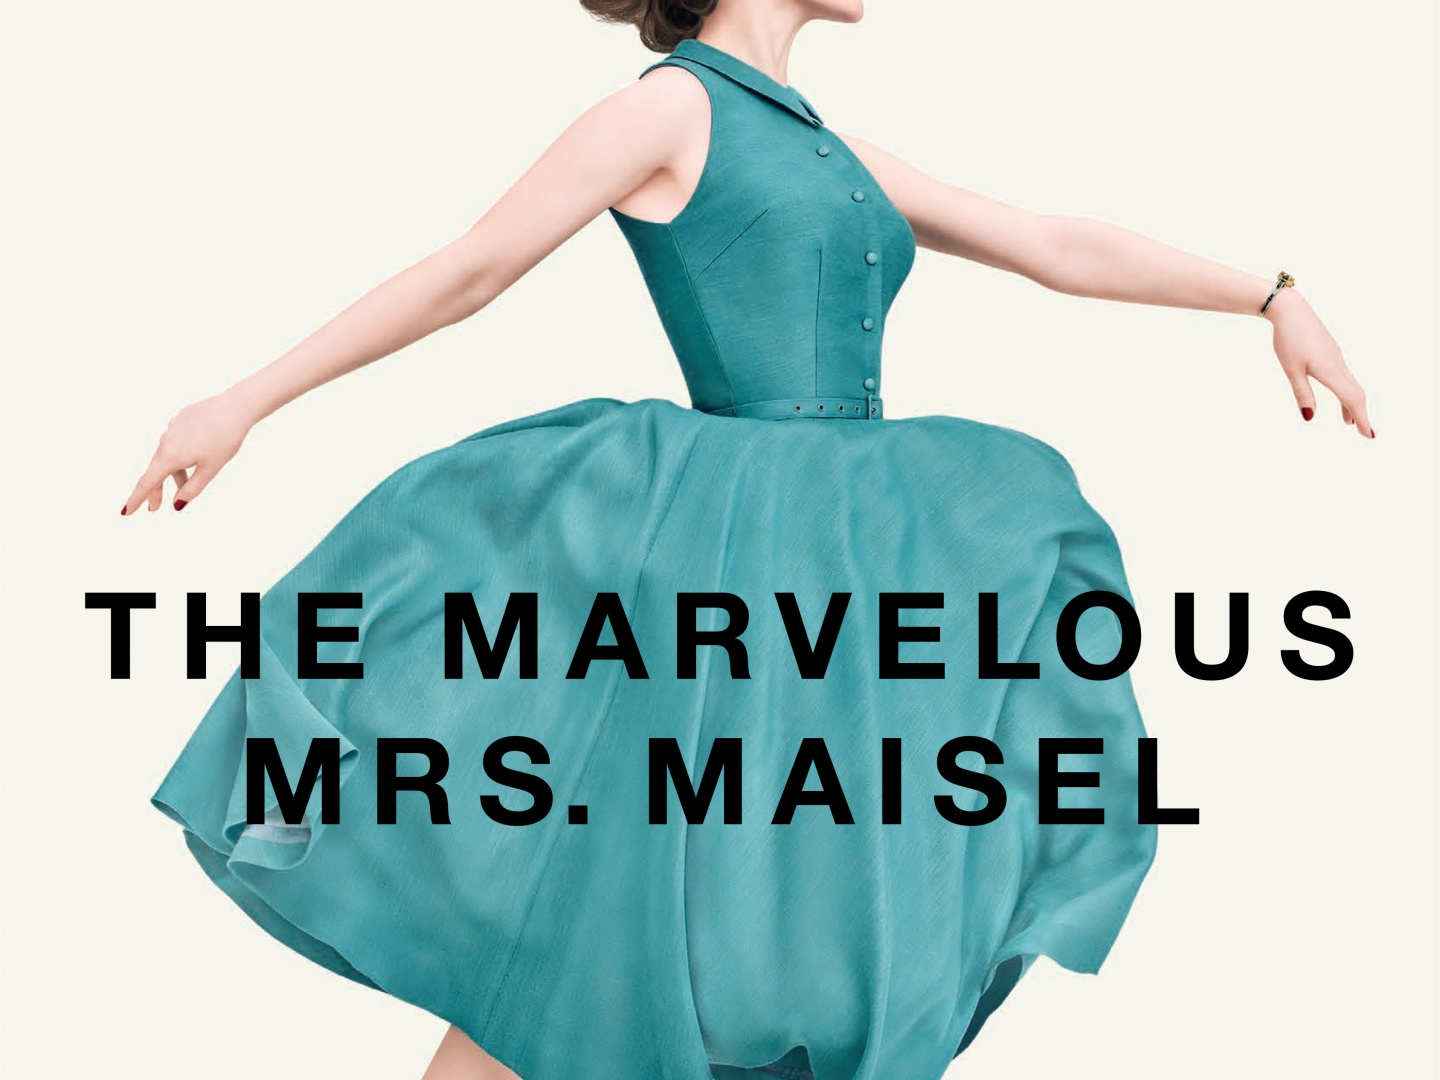 Image for The Marvelous Mrs. Maisel Magazine Cover Takeover (Variety)